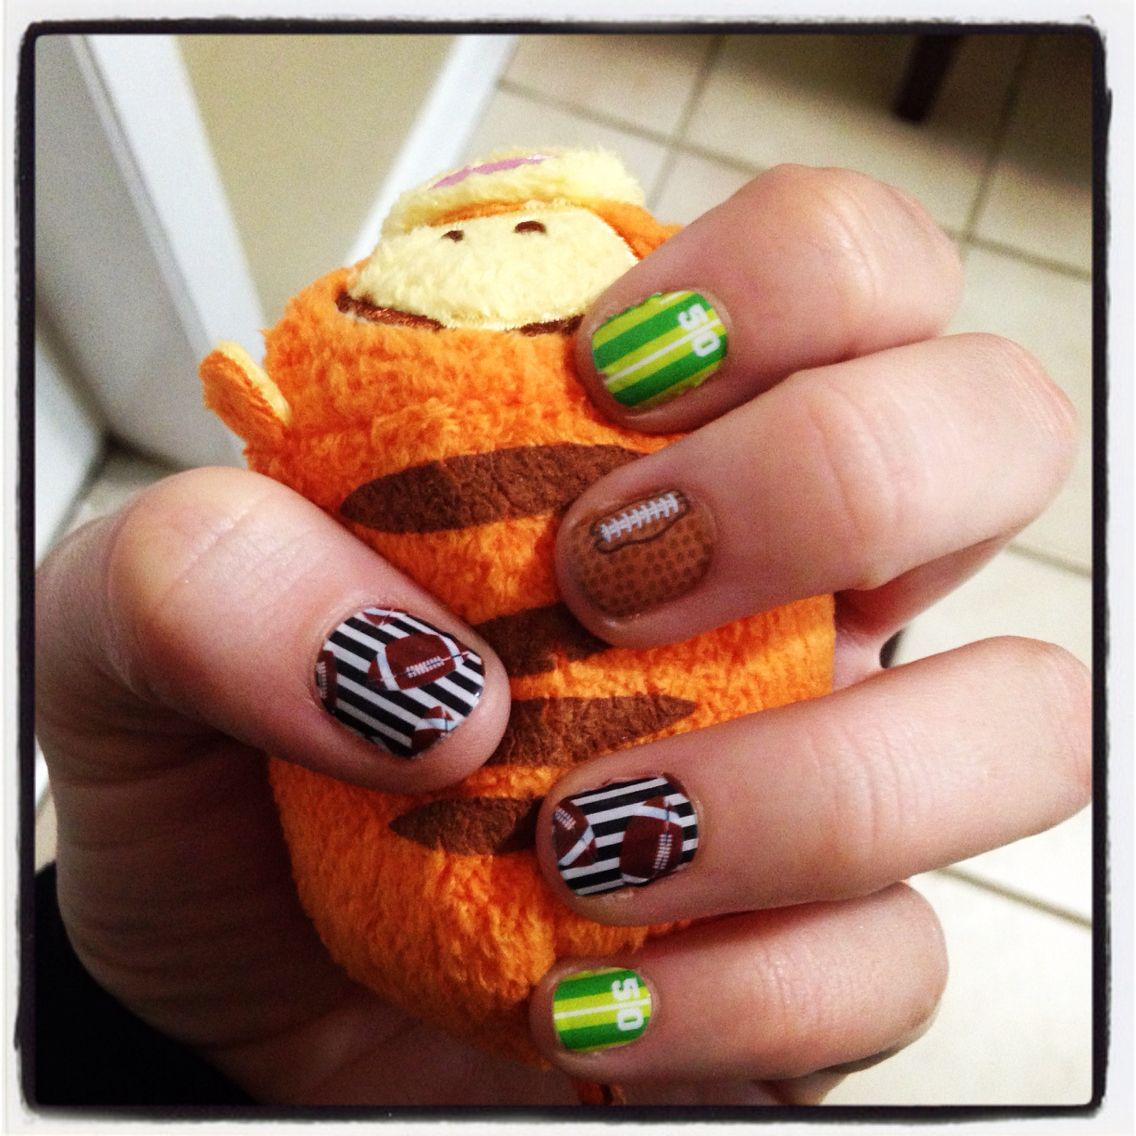 Love being able to express my mood with Jamberry wraps! http://katrinathorpe.jamberrynails.net/party/?uid=15540a9d-a575-41fc-8e32-6798d9a62285